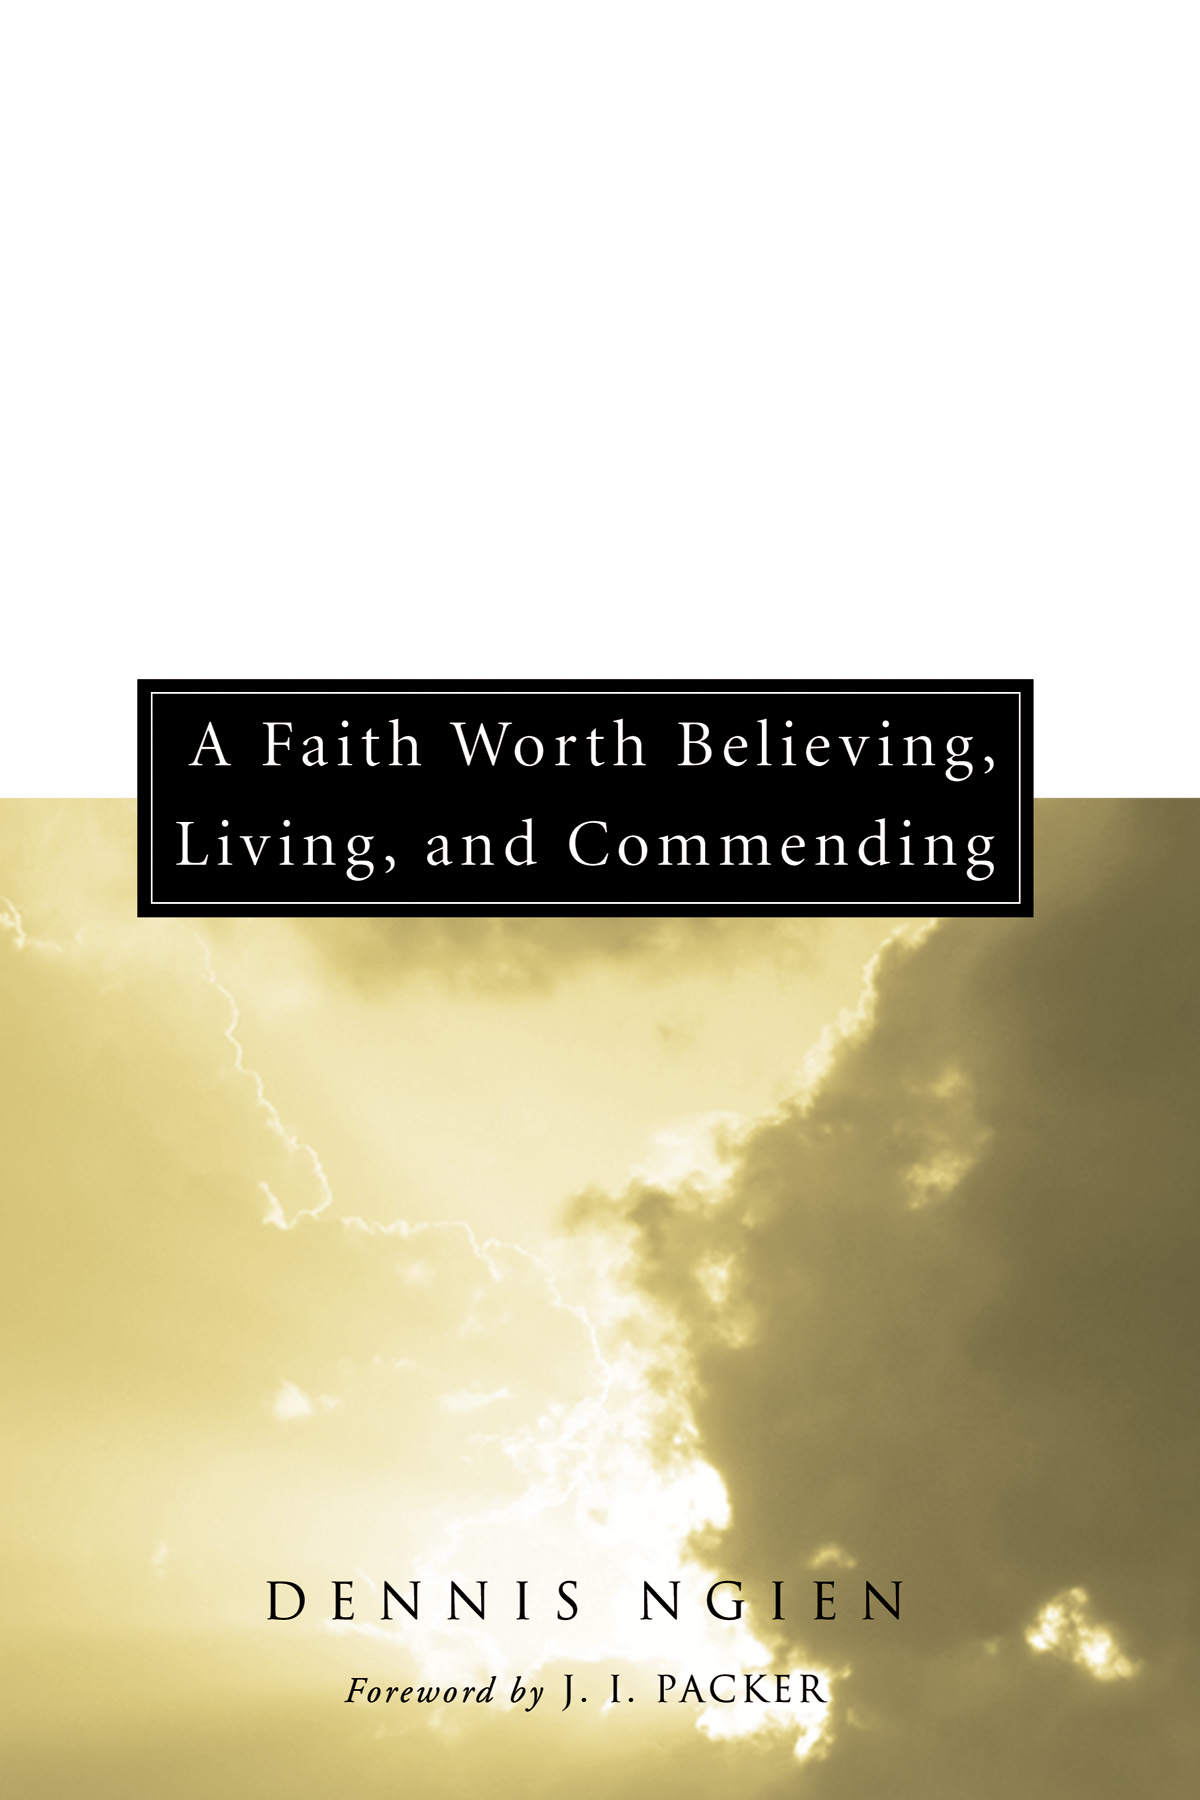 an analysis of the topic of faith as a belief If you ask most people, they'll tell you that faith and belief are the same thing i used to think so myself and that leads to all sorts of confusion.